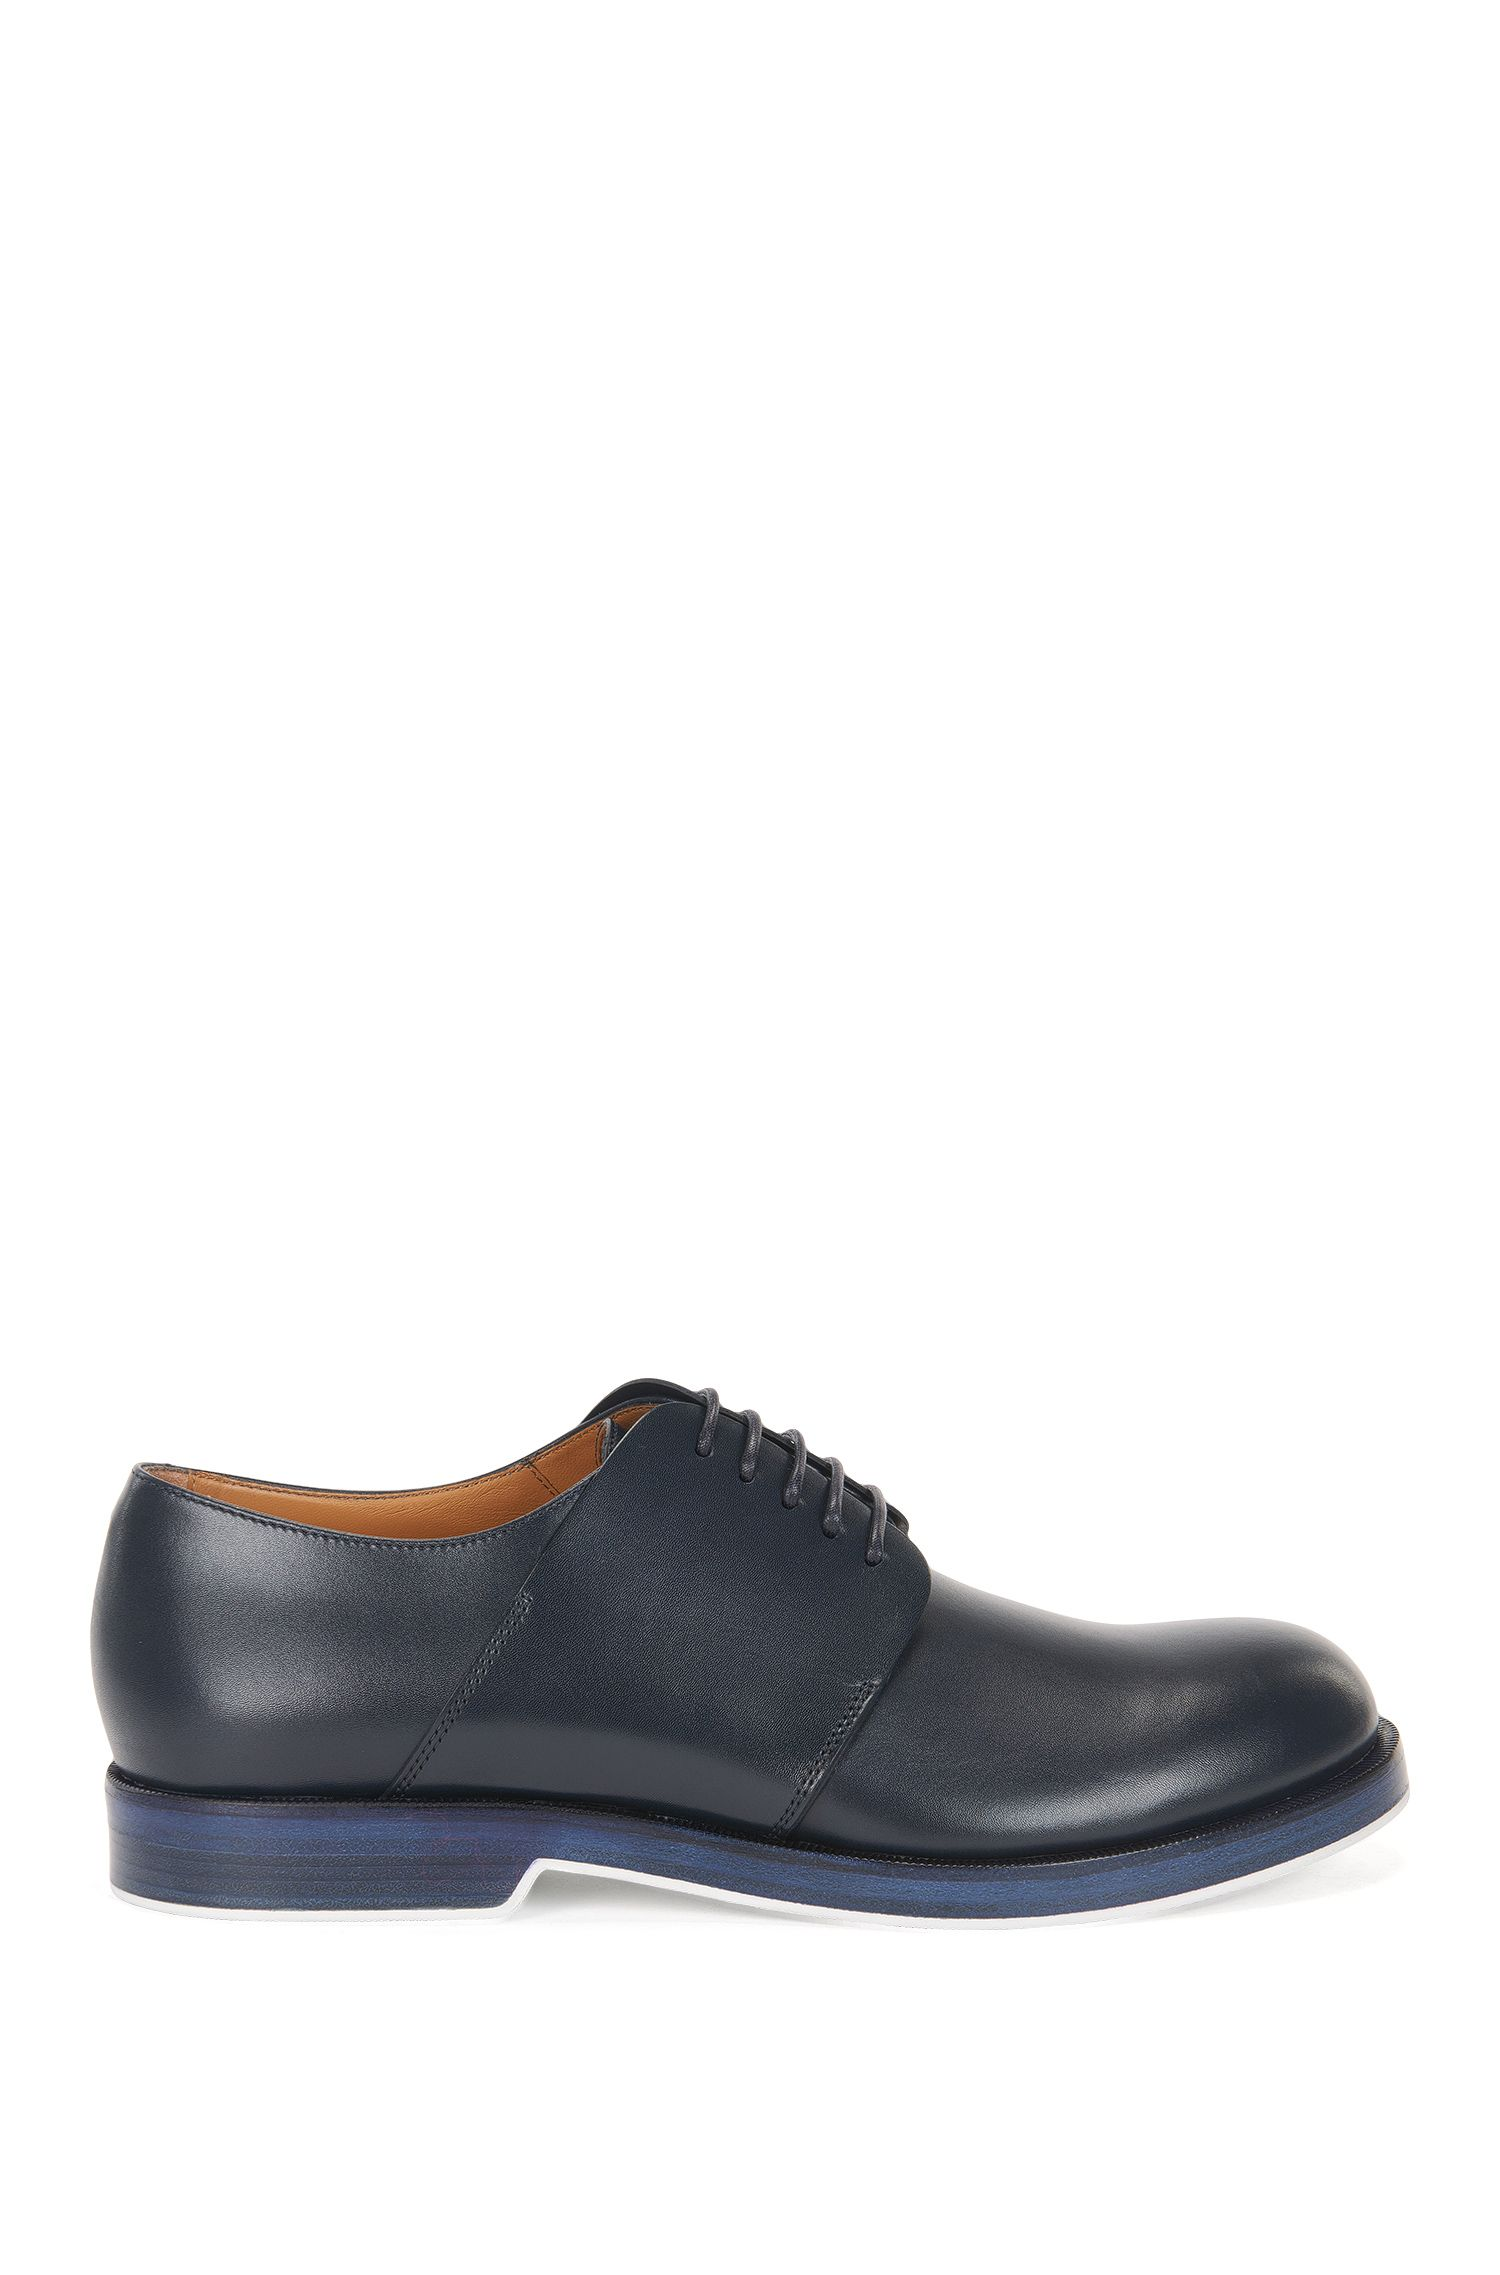 Derby shoes in leather